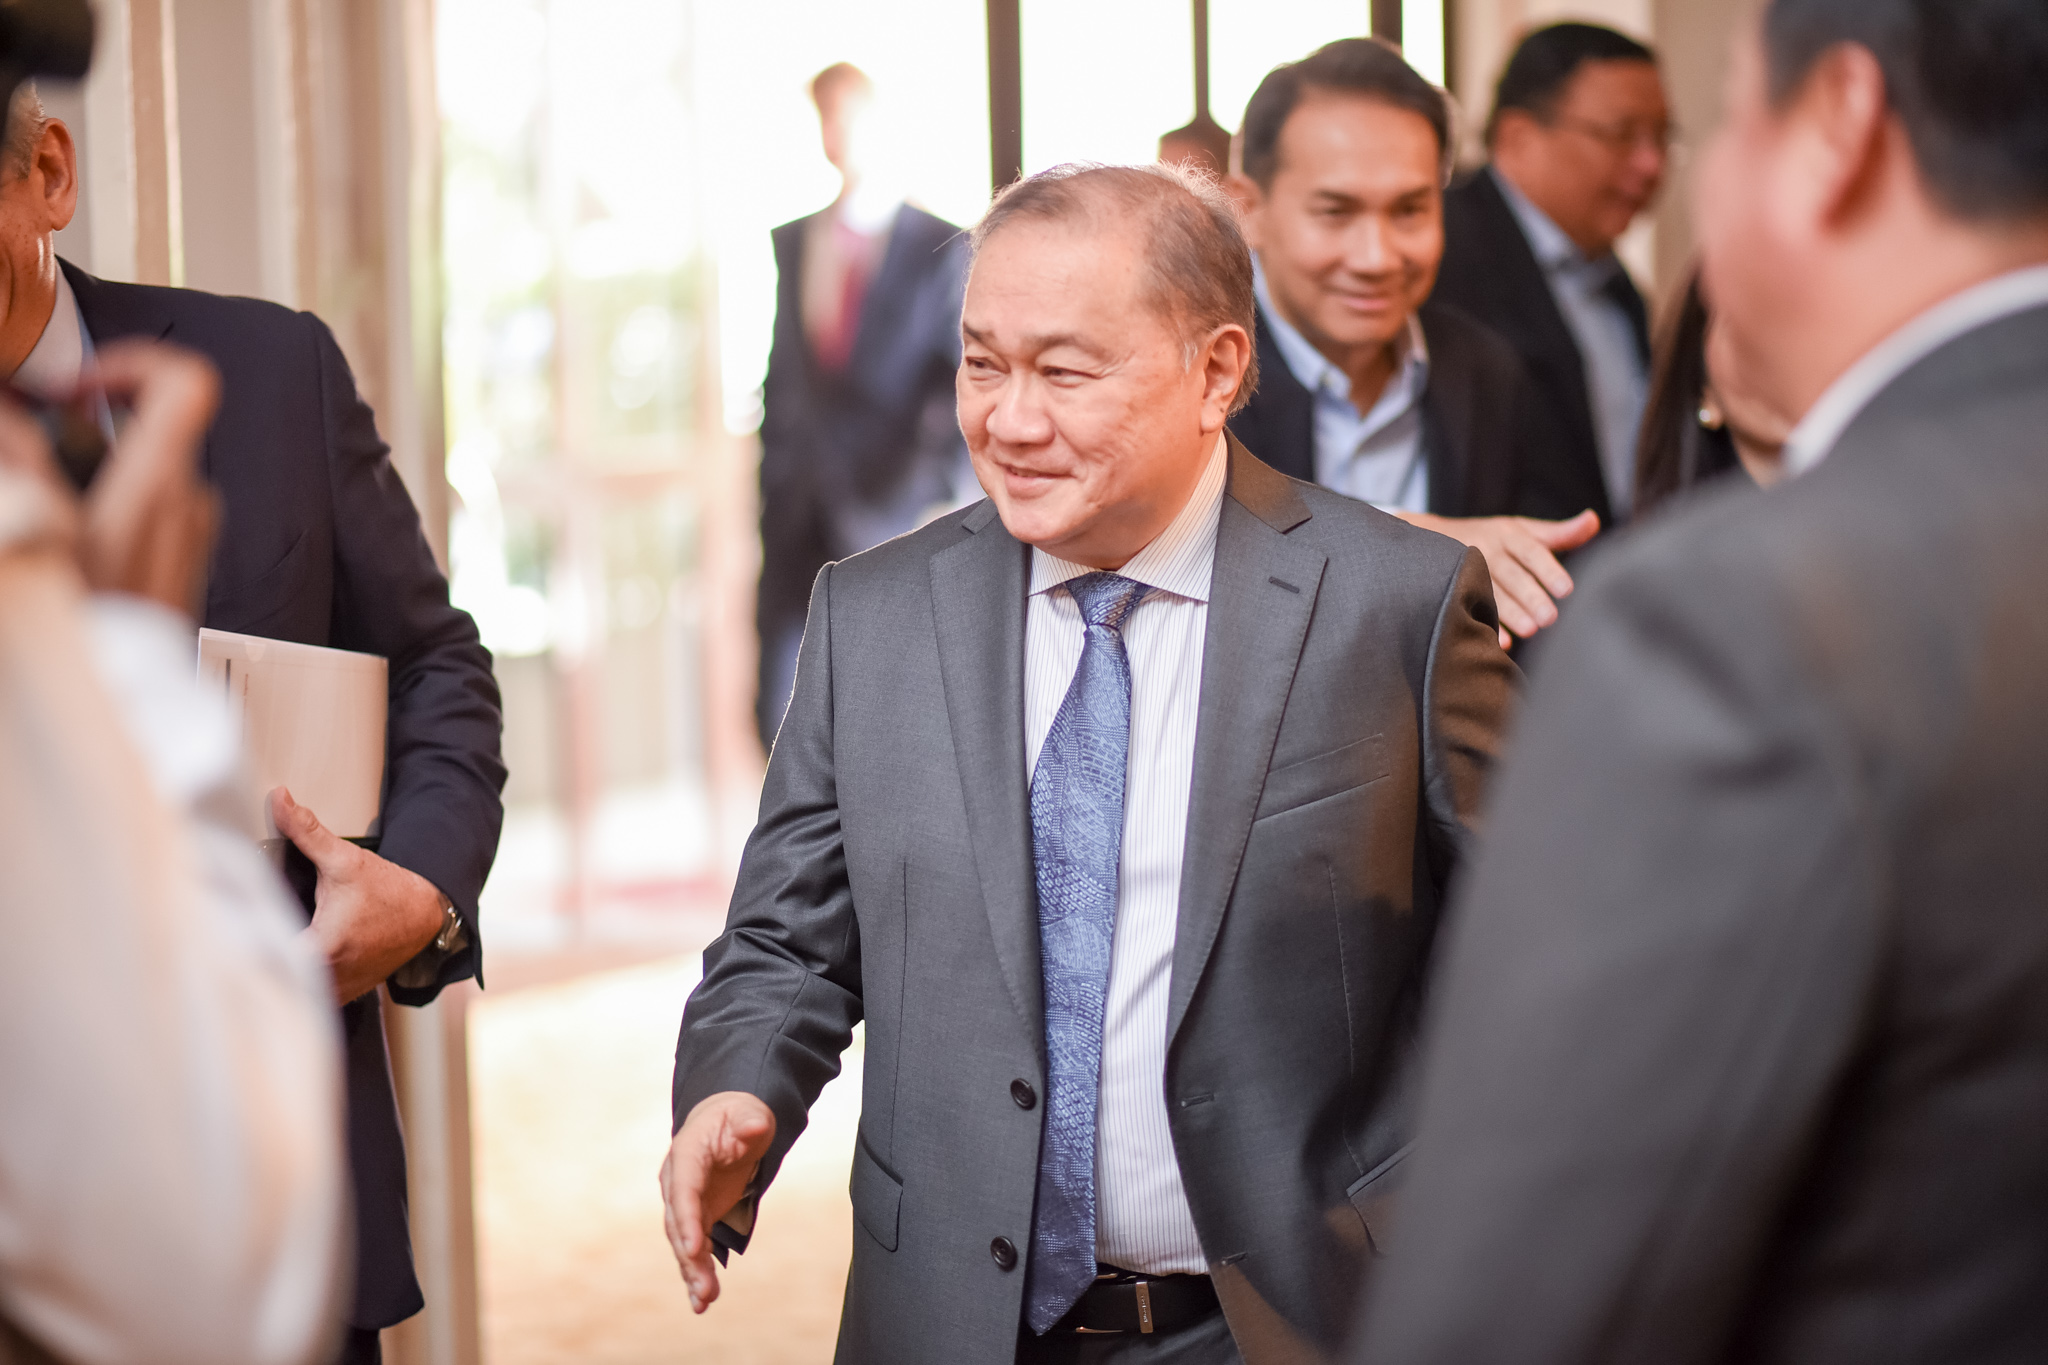 NOT ME. Tycoon Manny Pangilinan assures the Maynilad board that they will keep the water utilities business. File photo by Martin San Diego/Rappler